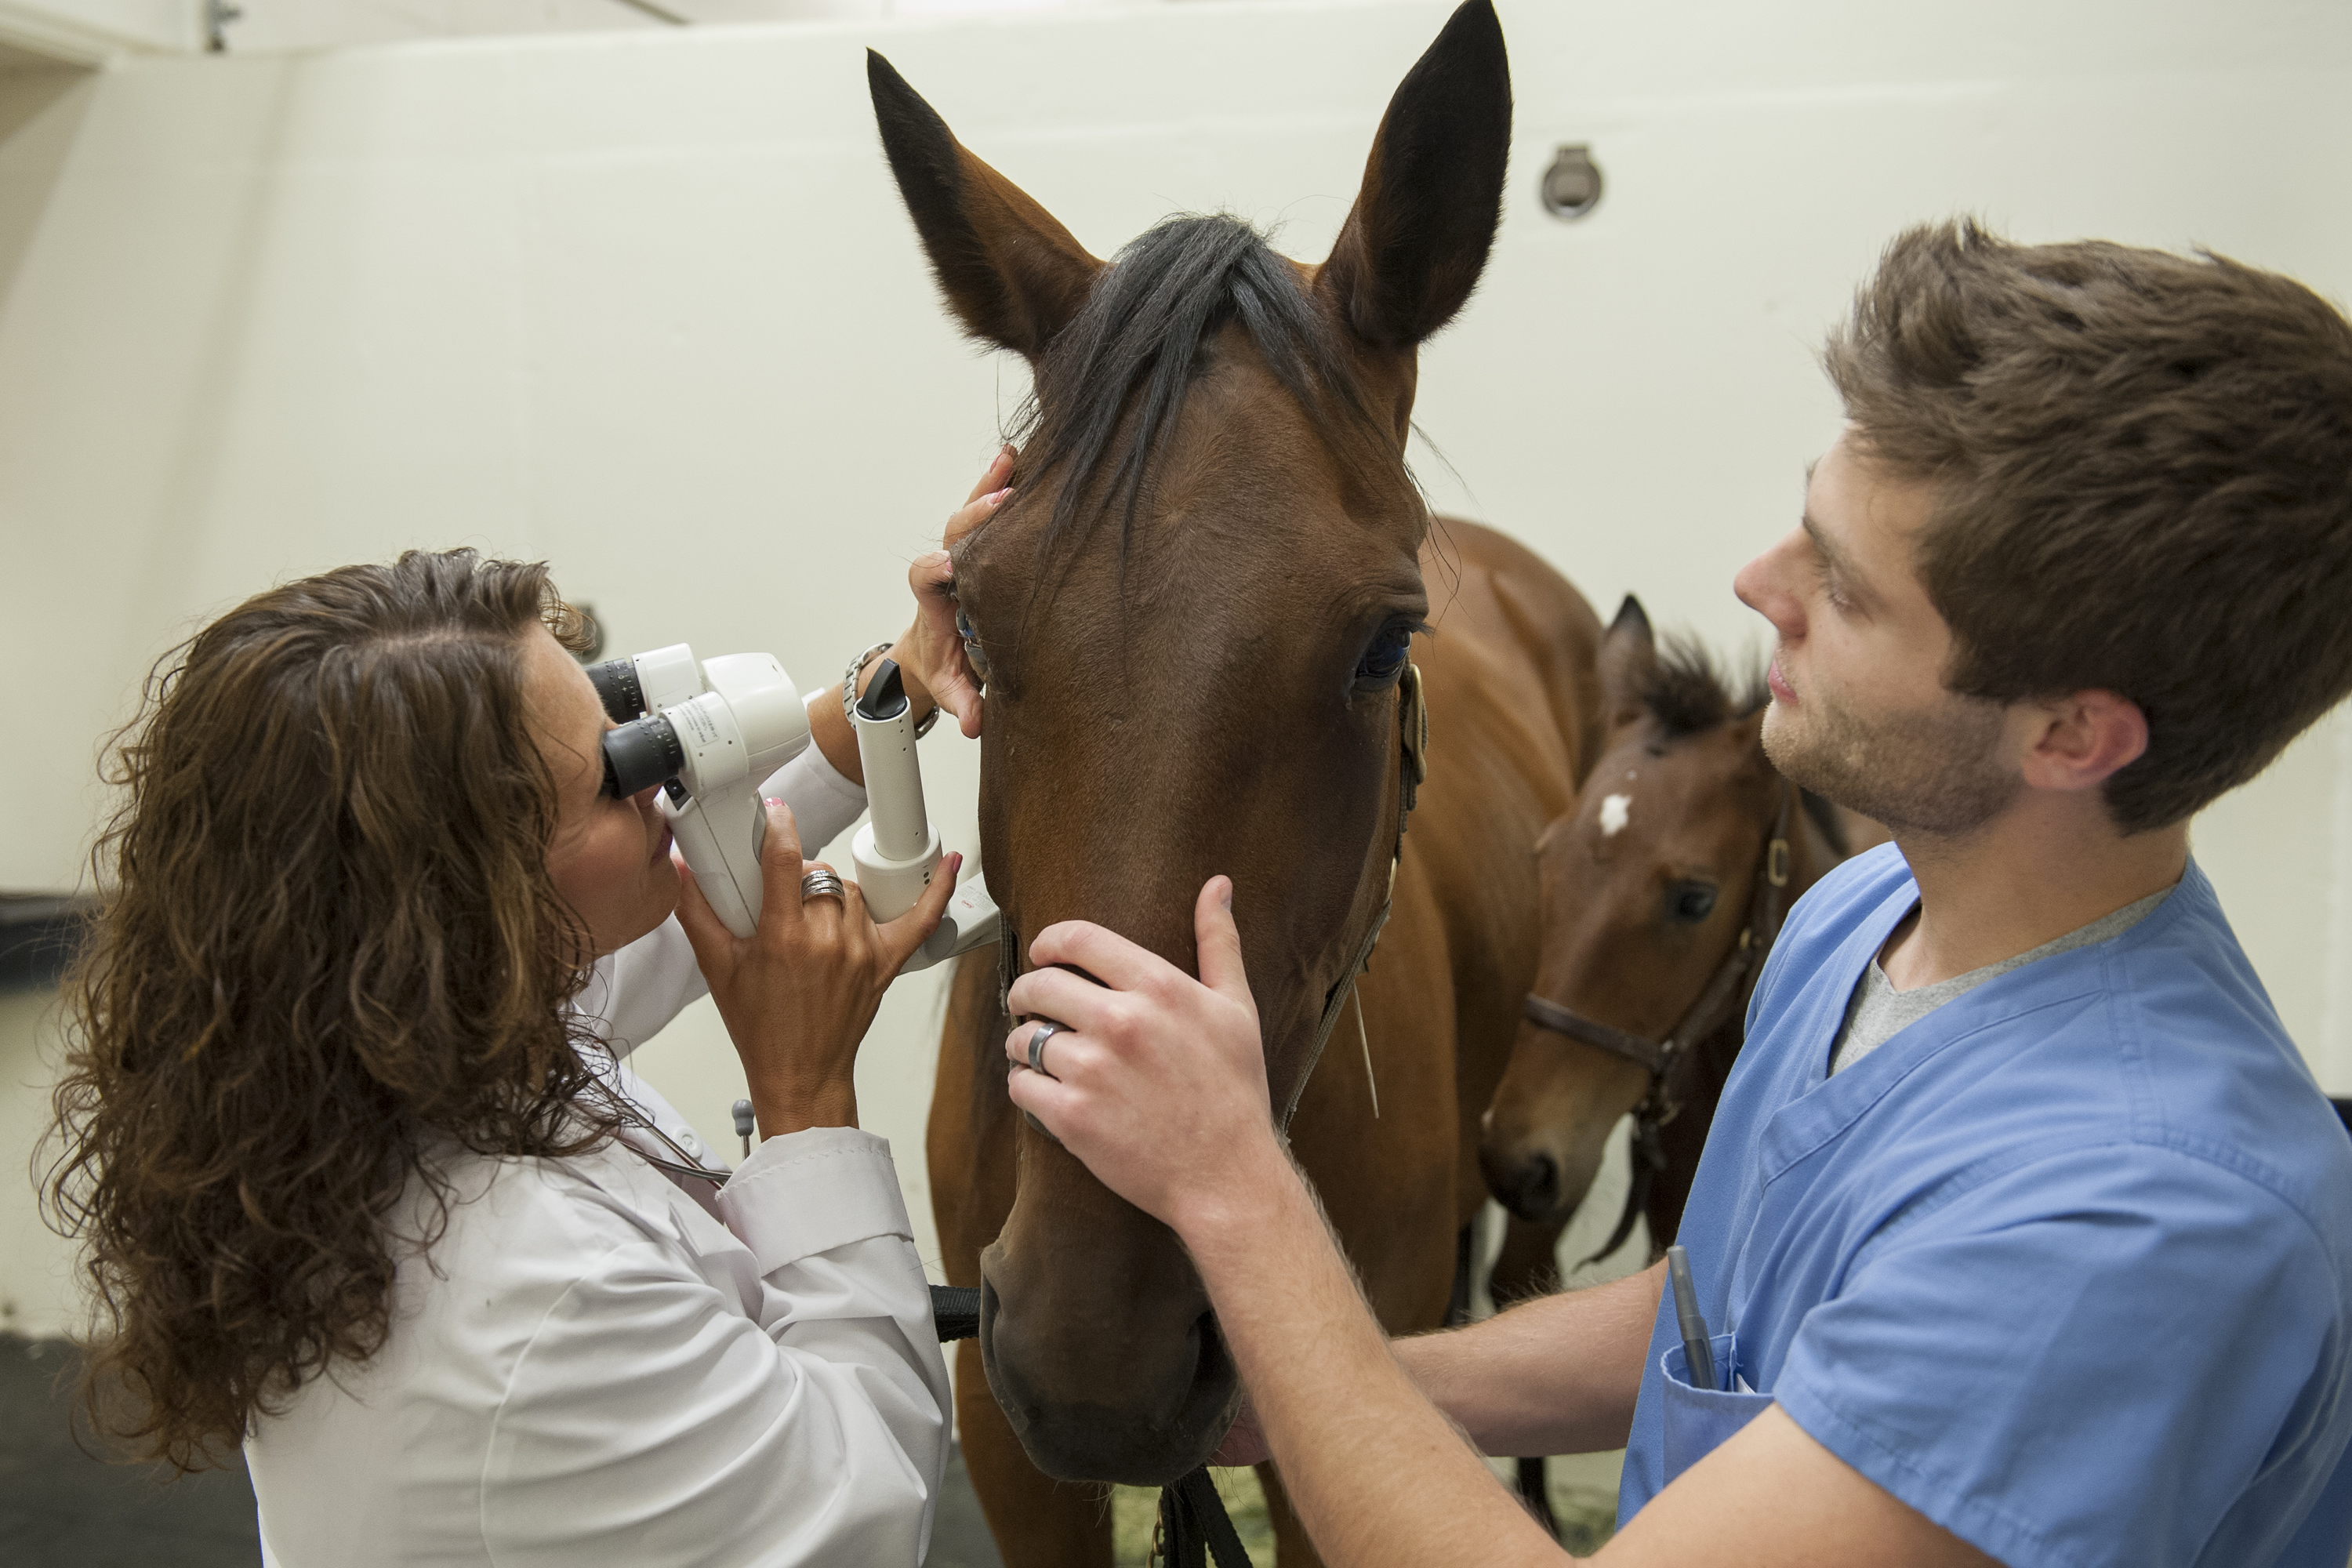 Veterinary medicine student with horse